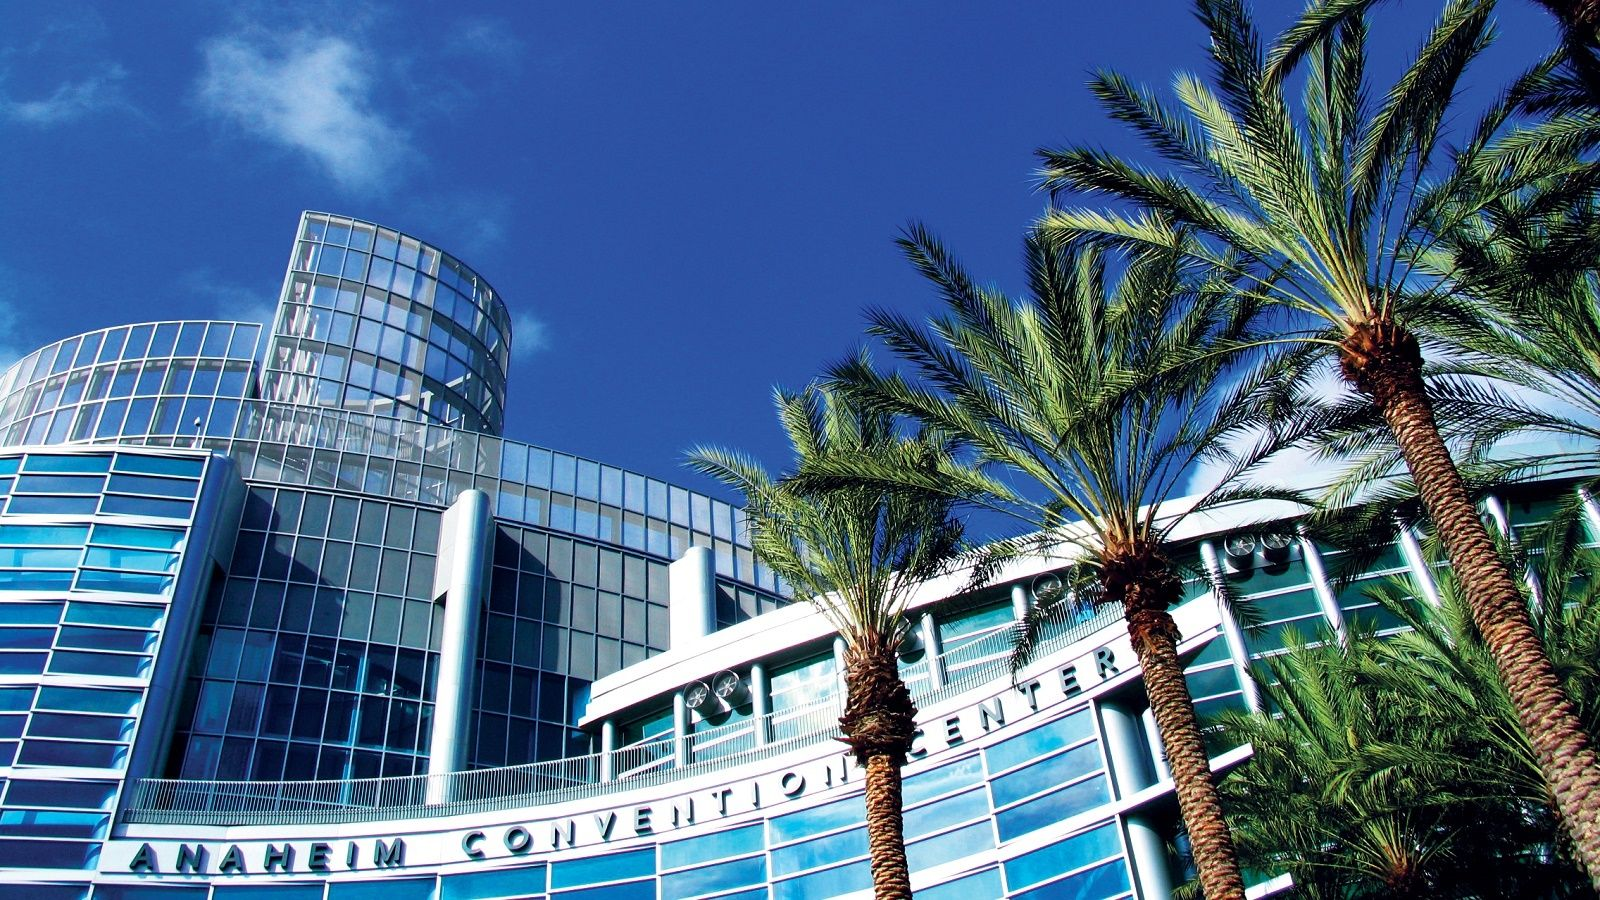 "=""anaheim-convention-center""/"